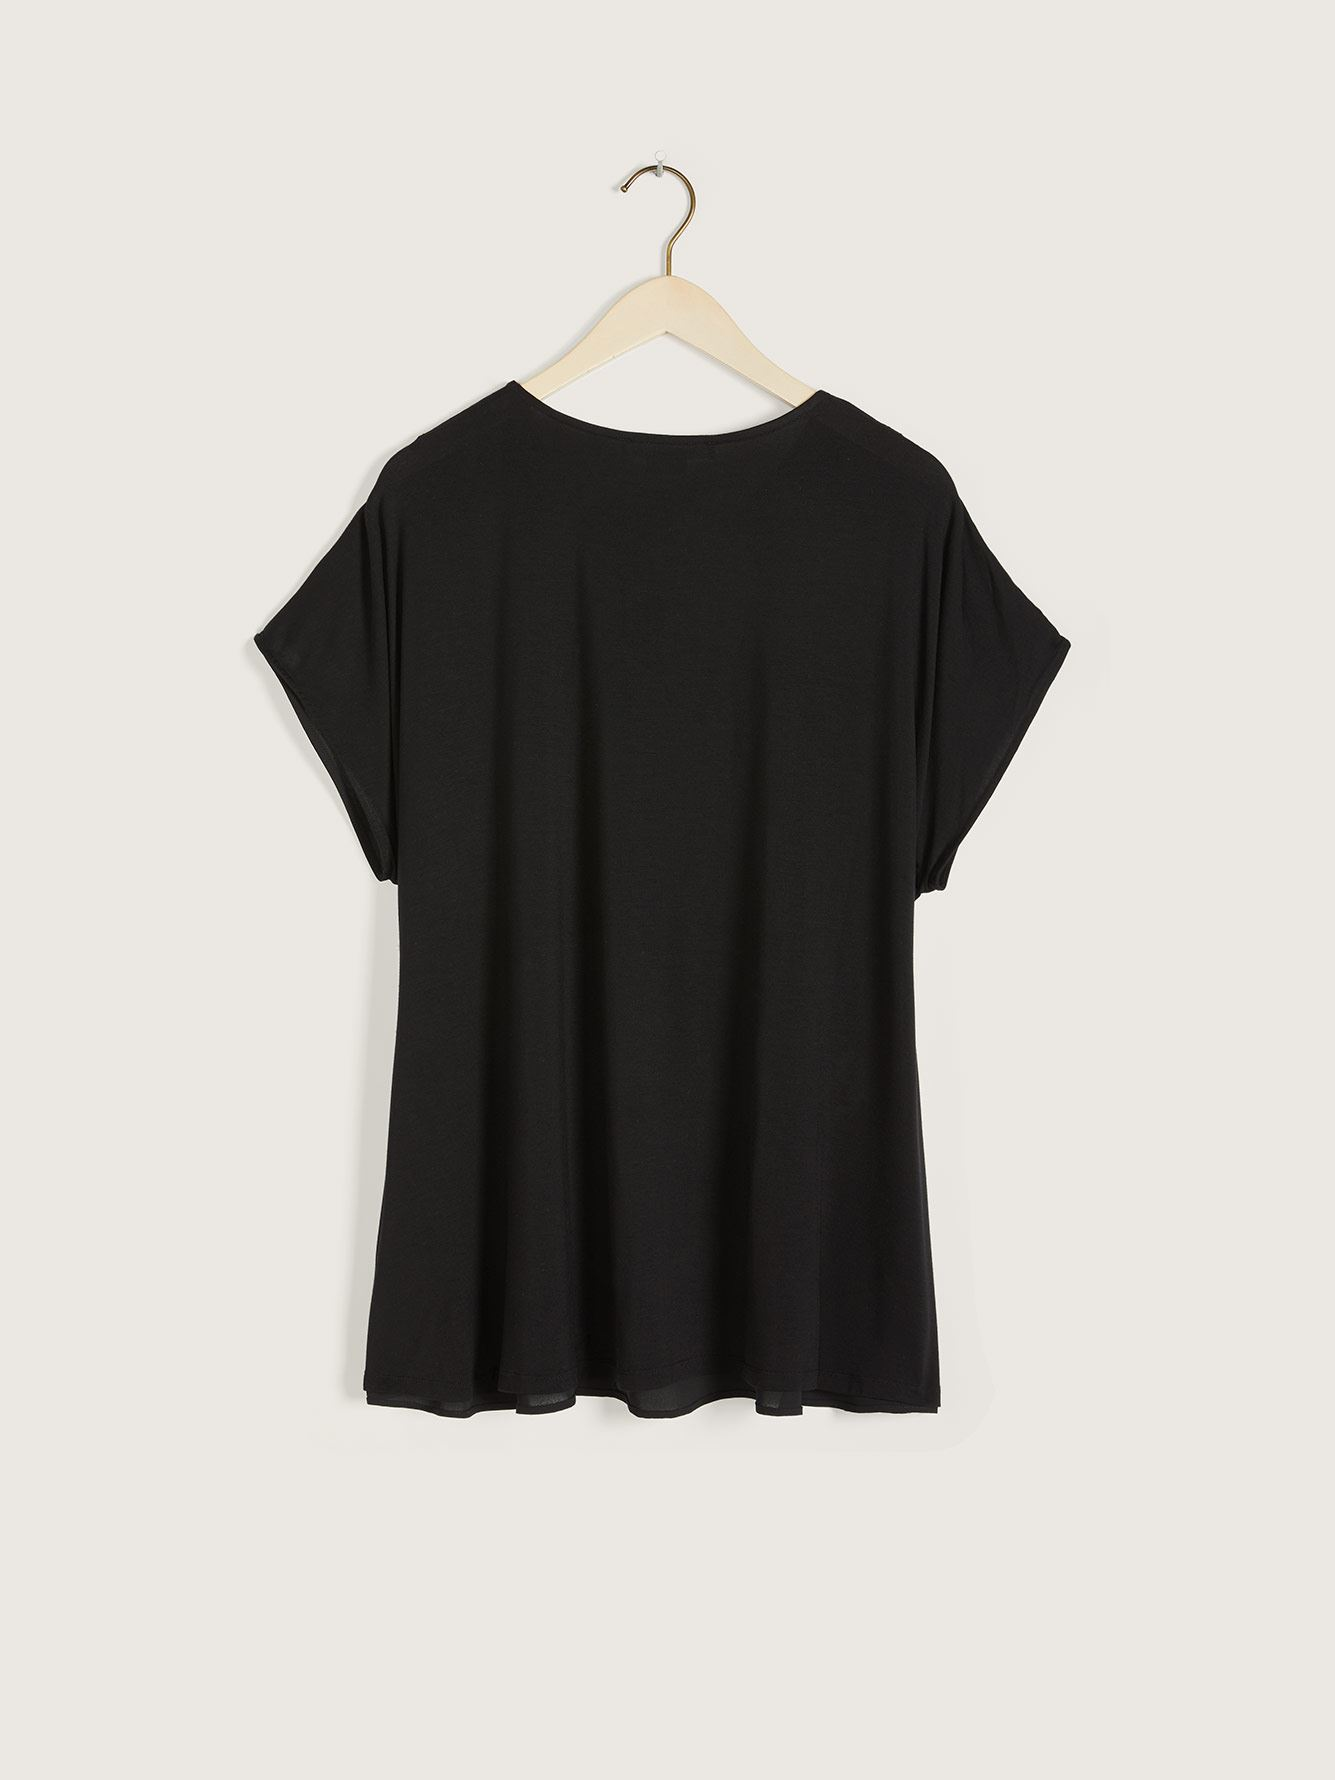 Short-Sleeve Mix Media Top - In Every Story